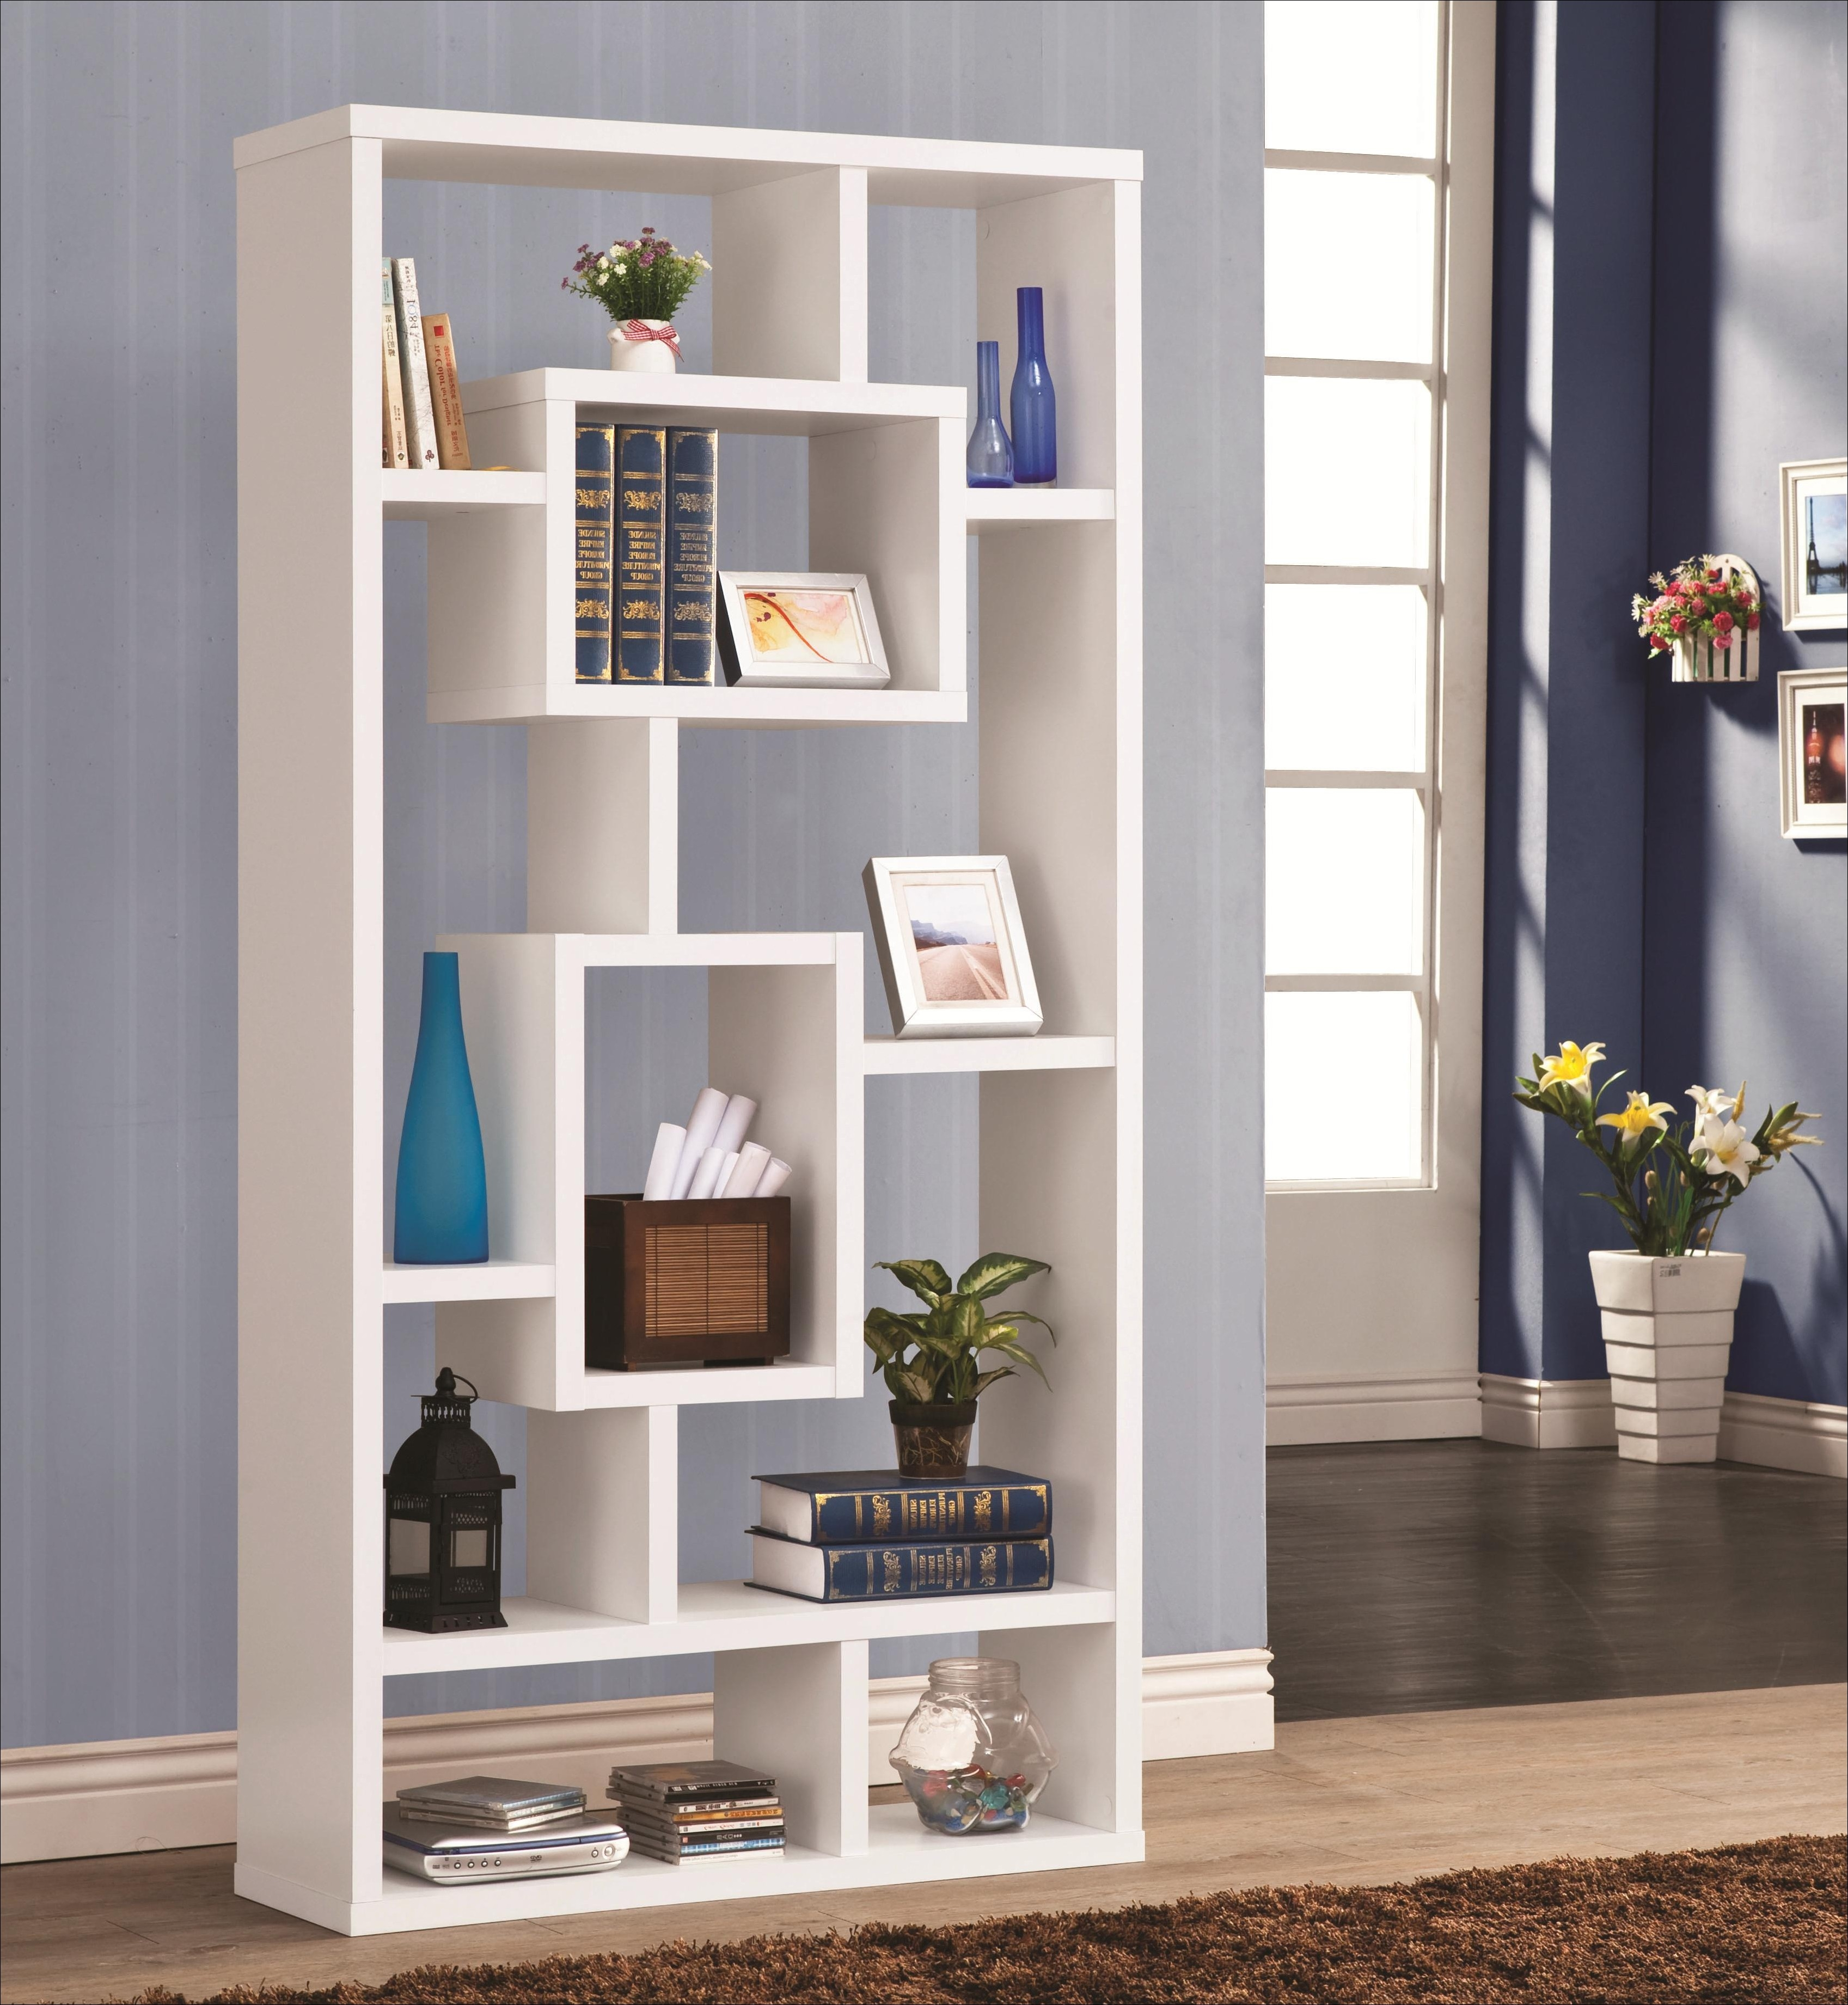 rustic is modular so simple diy bookshelf bookcase construction pin backless yet this effective